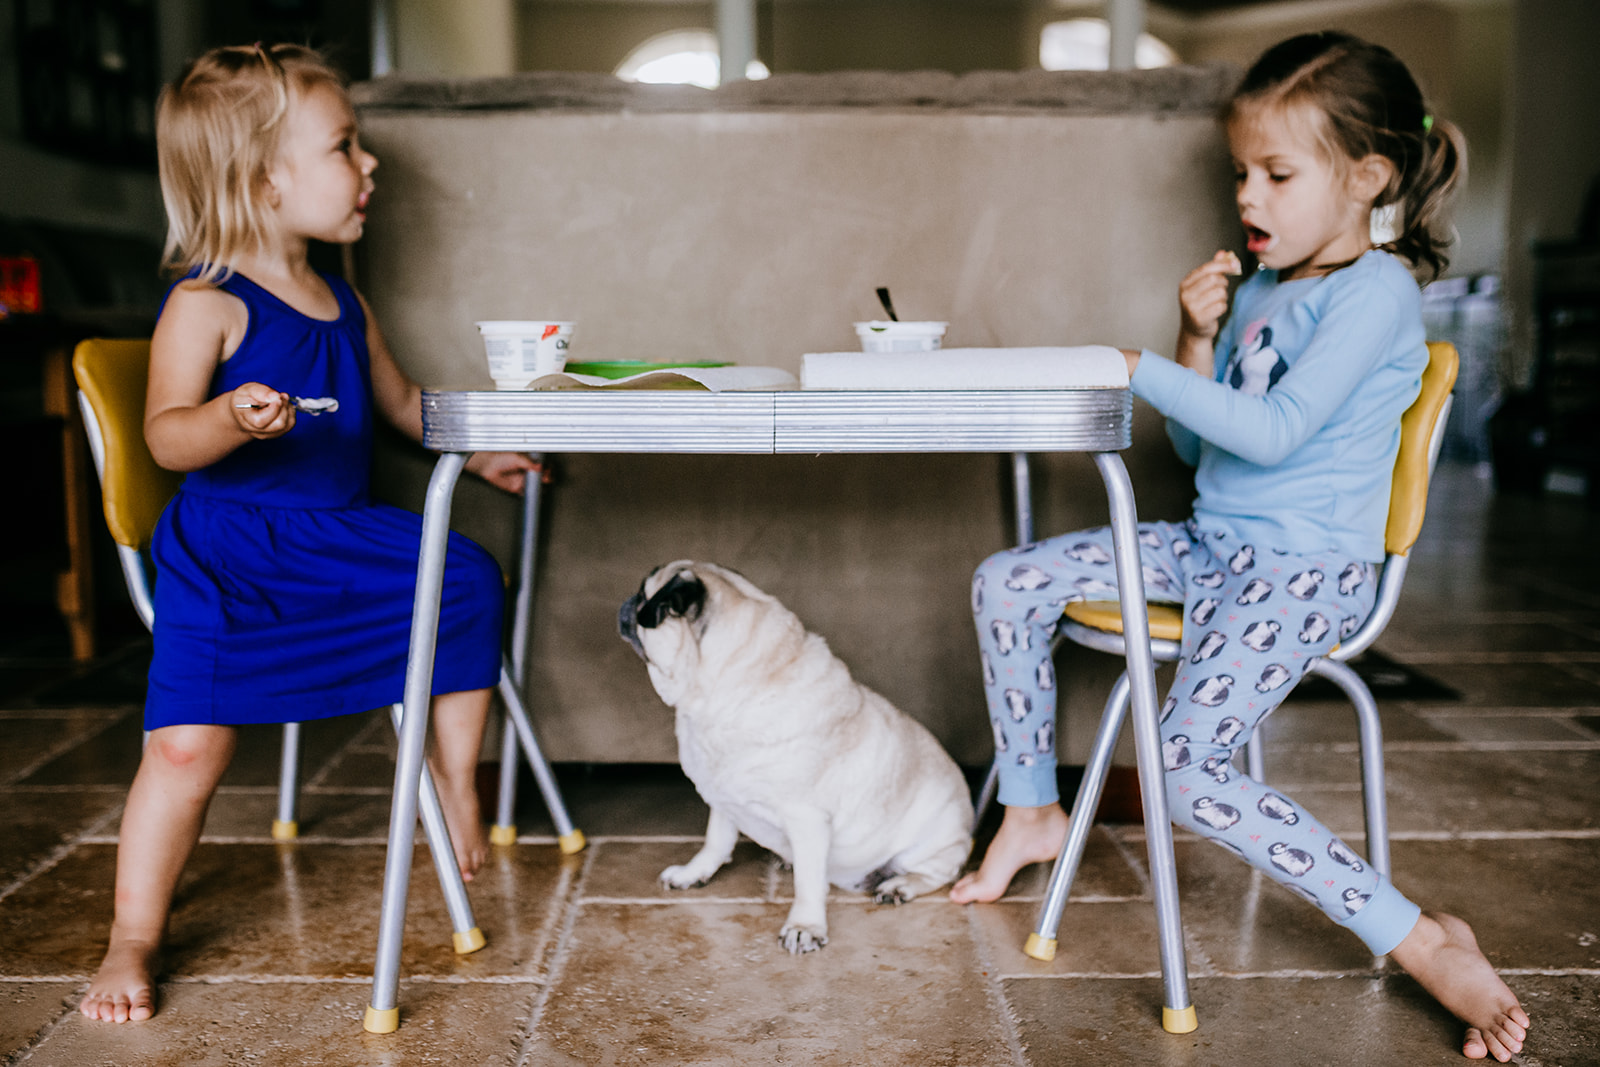 Sisters eat lunch at their kid's table while pug waits underneath for scraps